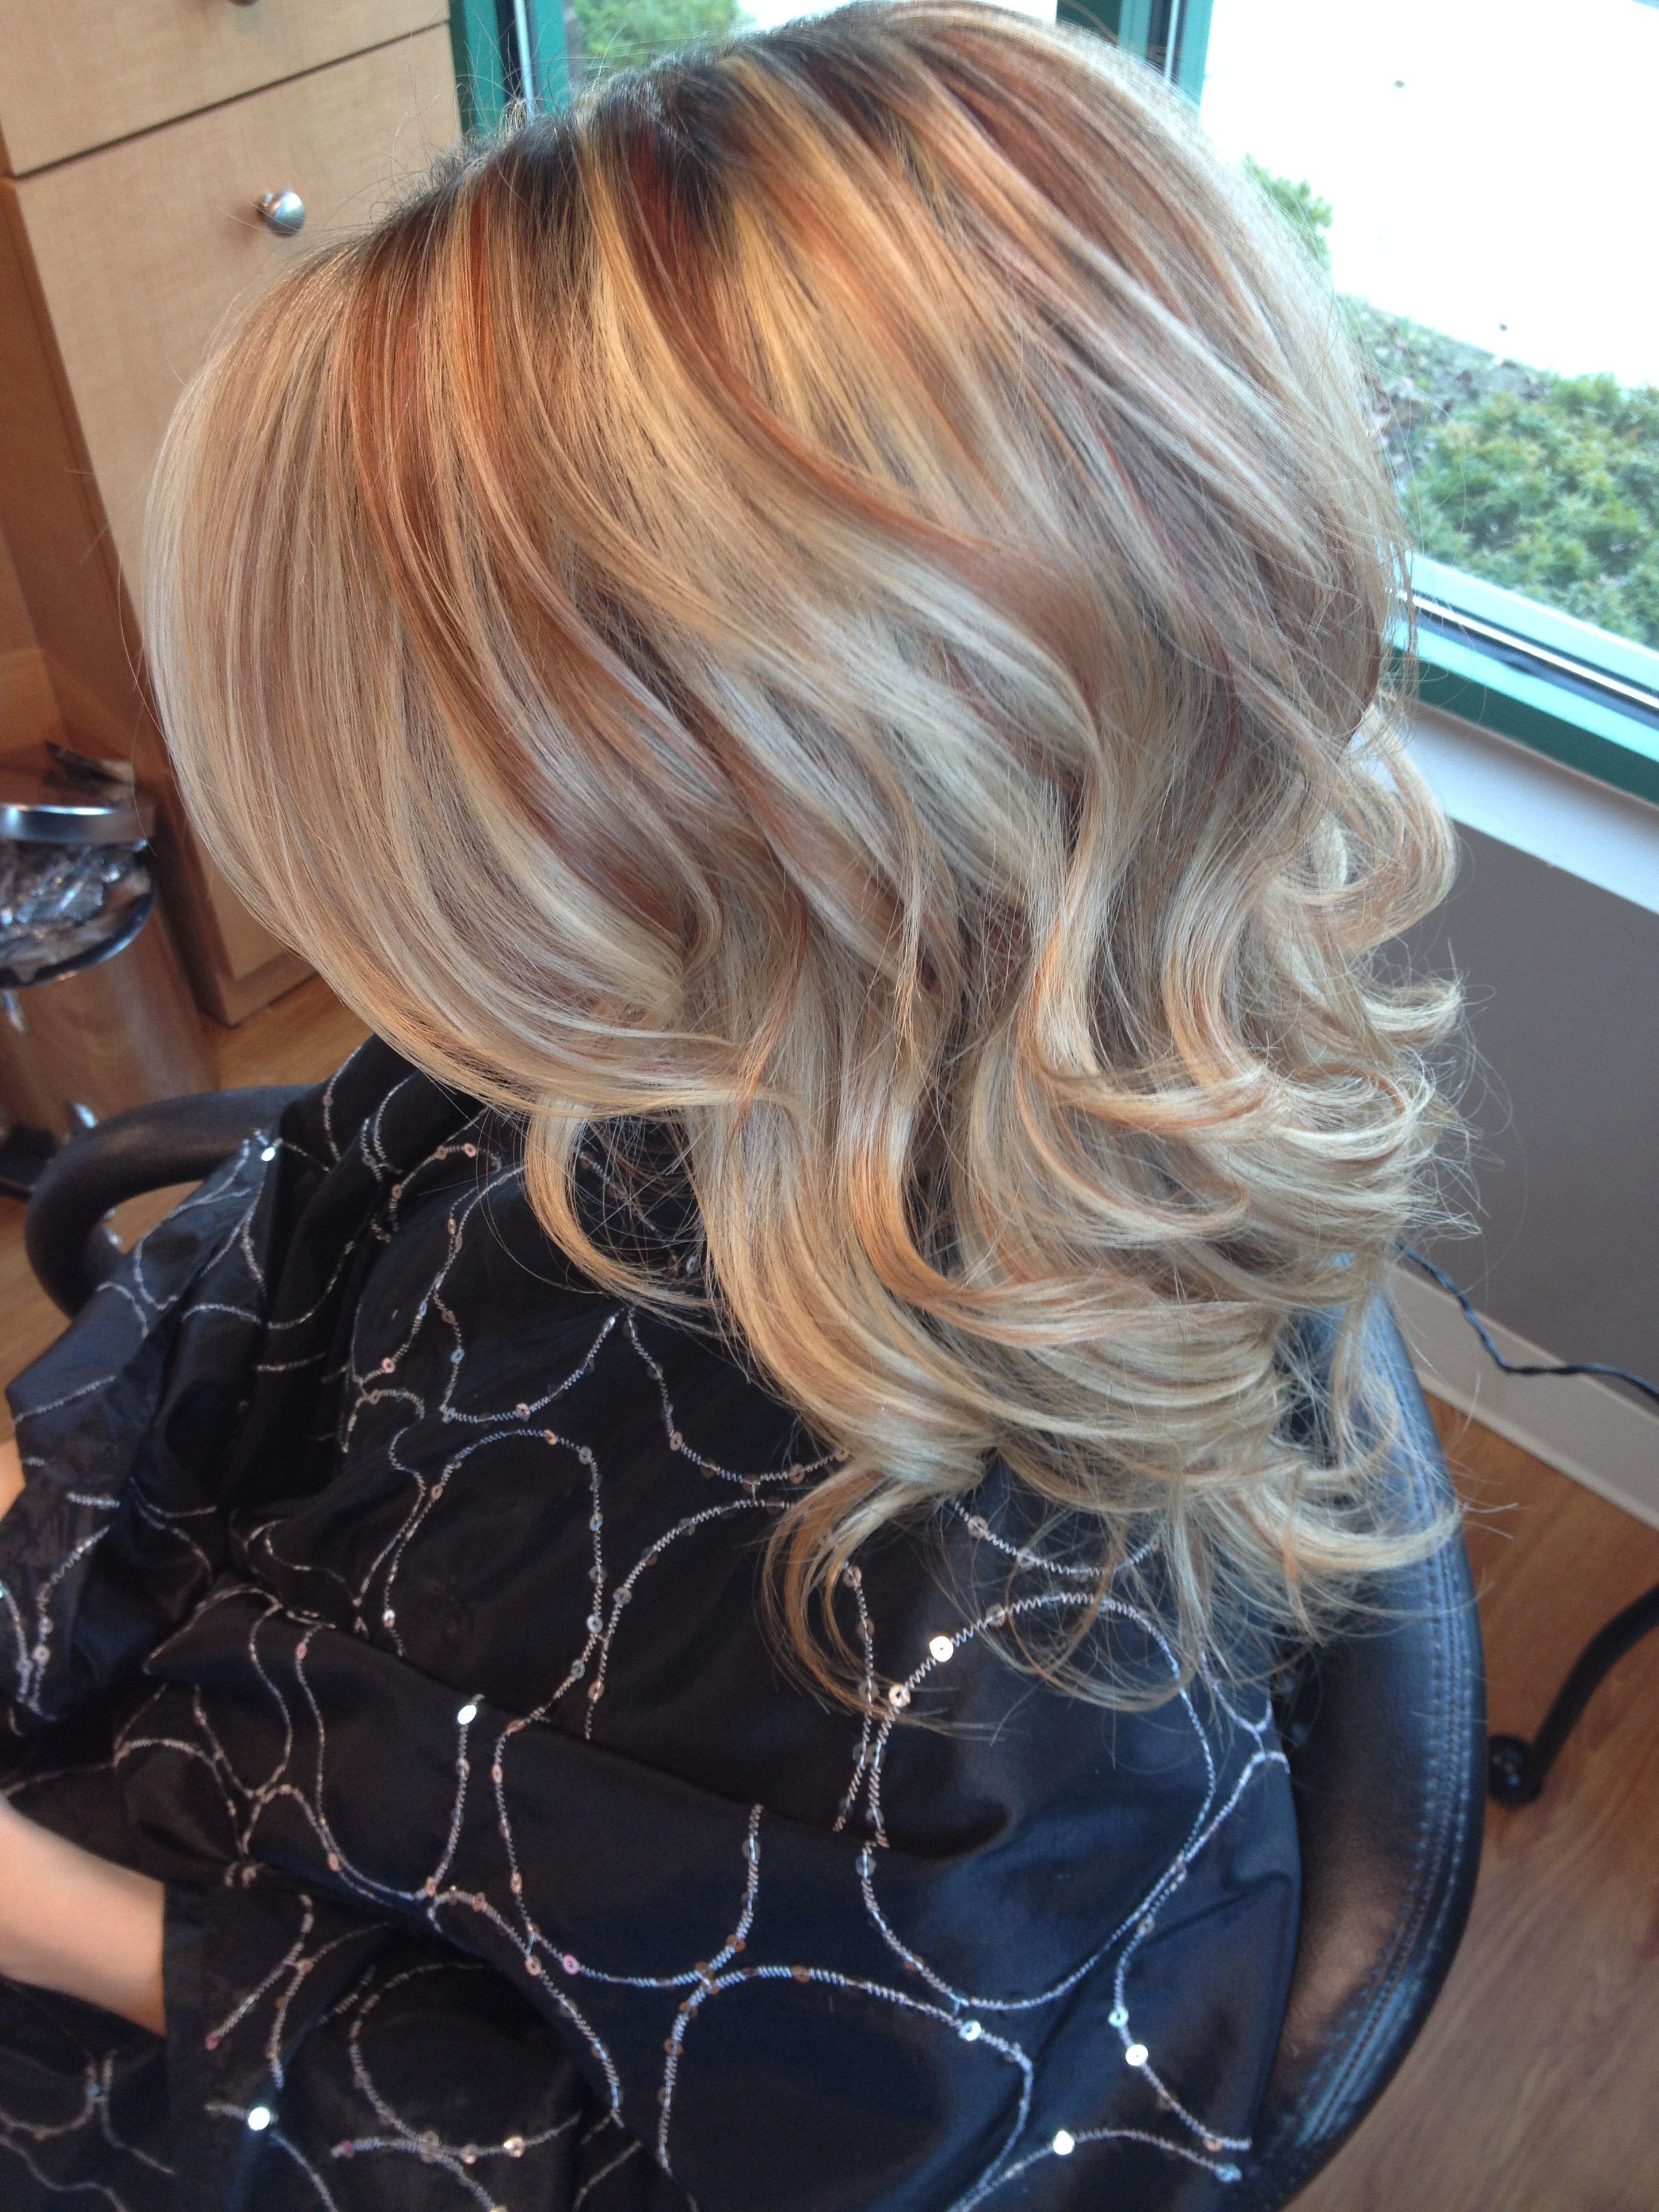 blonde with copper highlights curls | hair by melissa